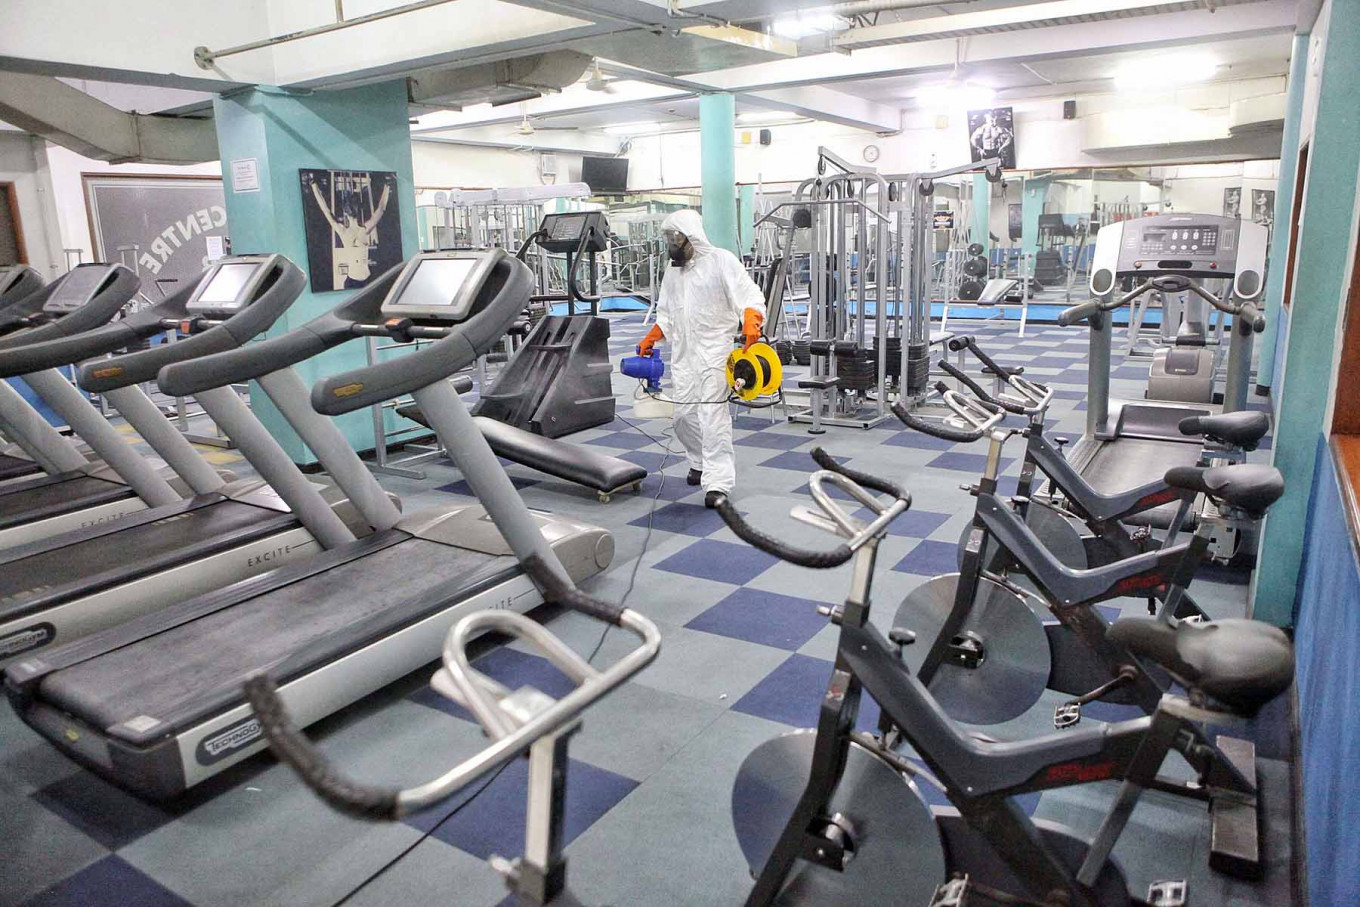 Gyms may reopen under transitional PSBB, Anies says